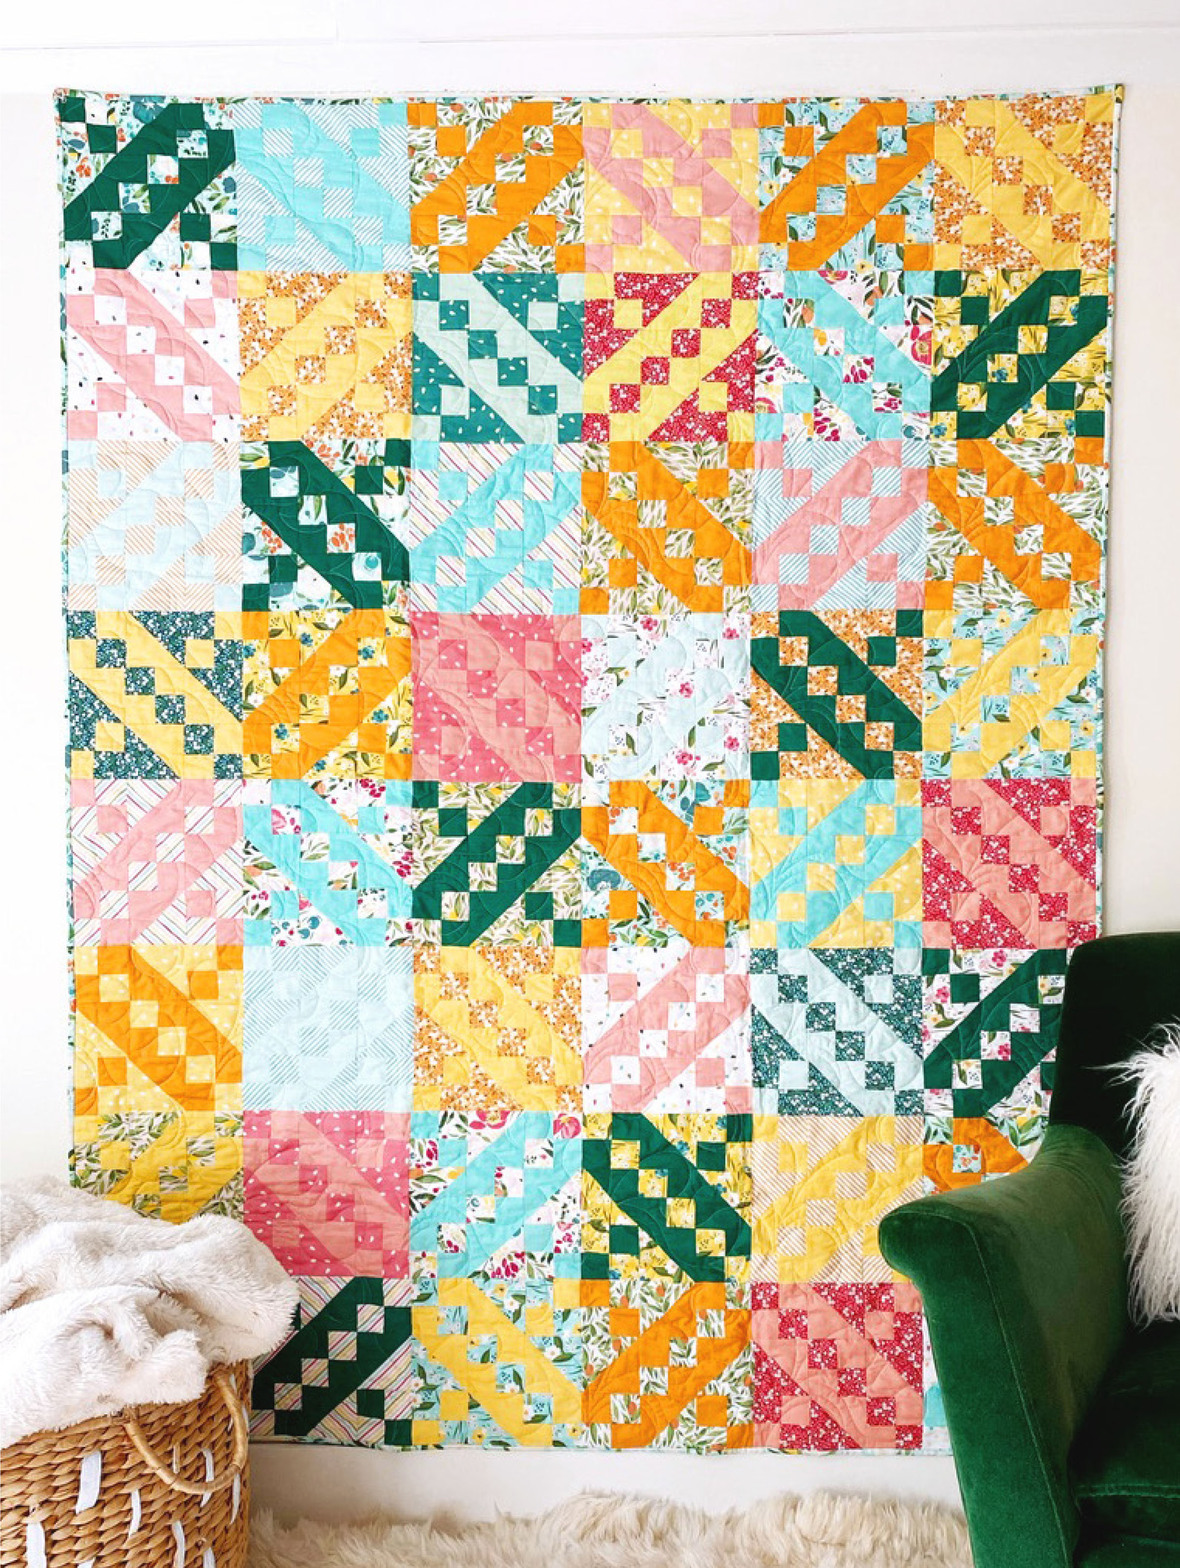 Jacobs Ladder quilt pattern by Jilie Baird free block pattern at generations quilt patterns 2